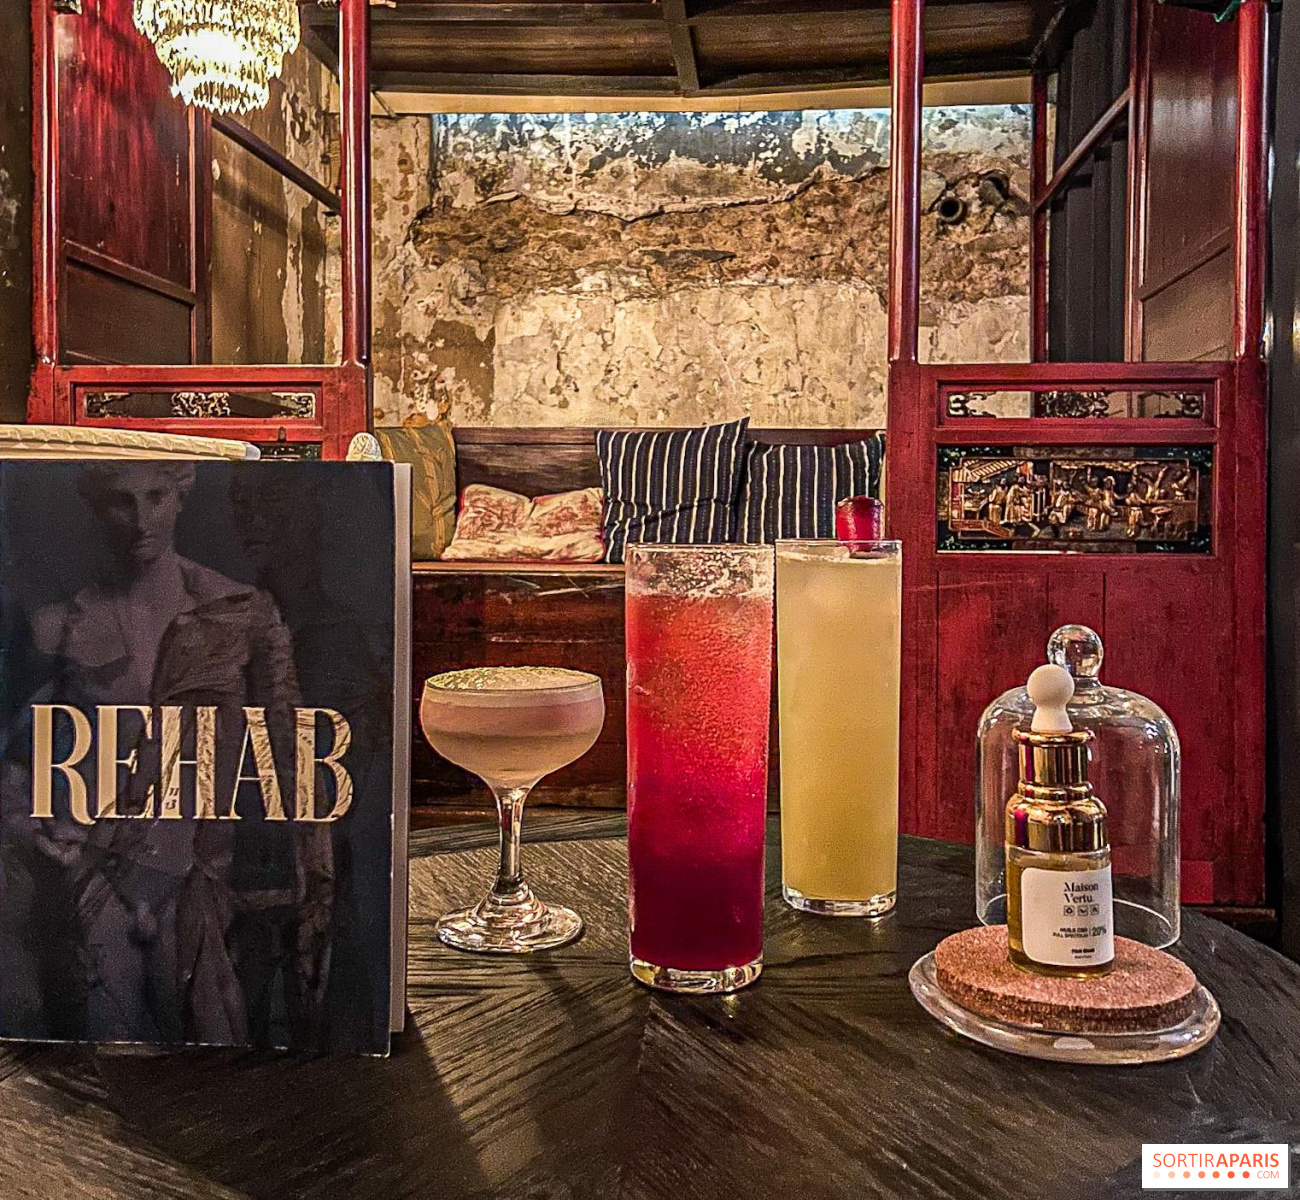 Rehab The Cbd Based Cocktail Bar In Paris Reopens Video Sortiraparis Com